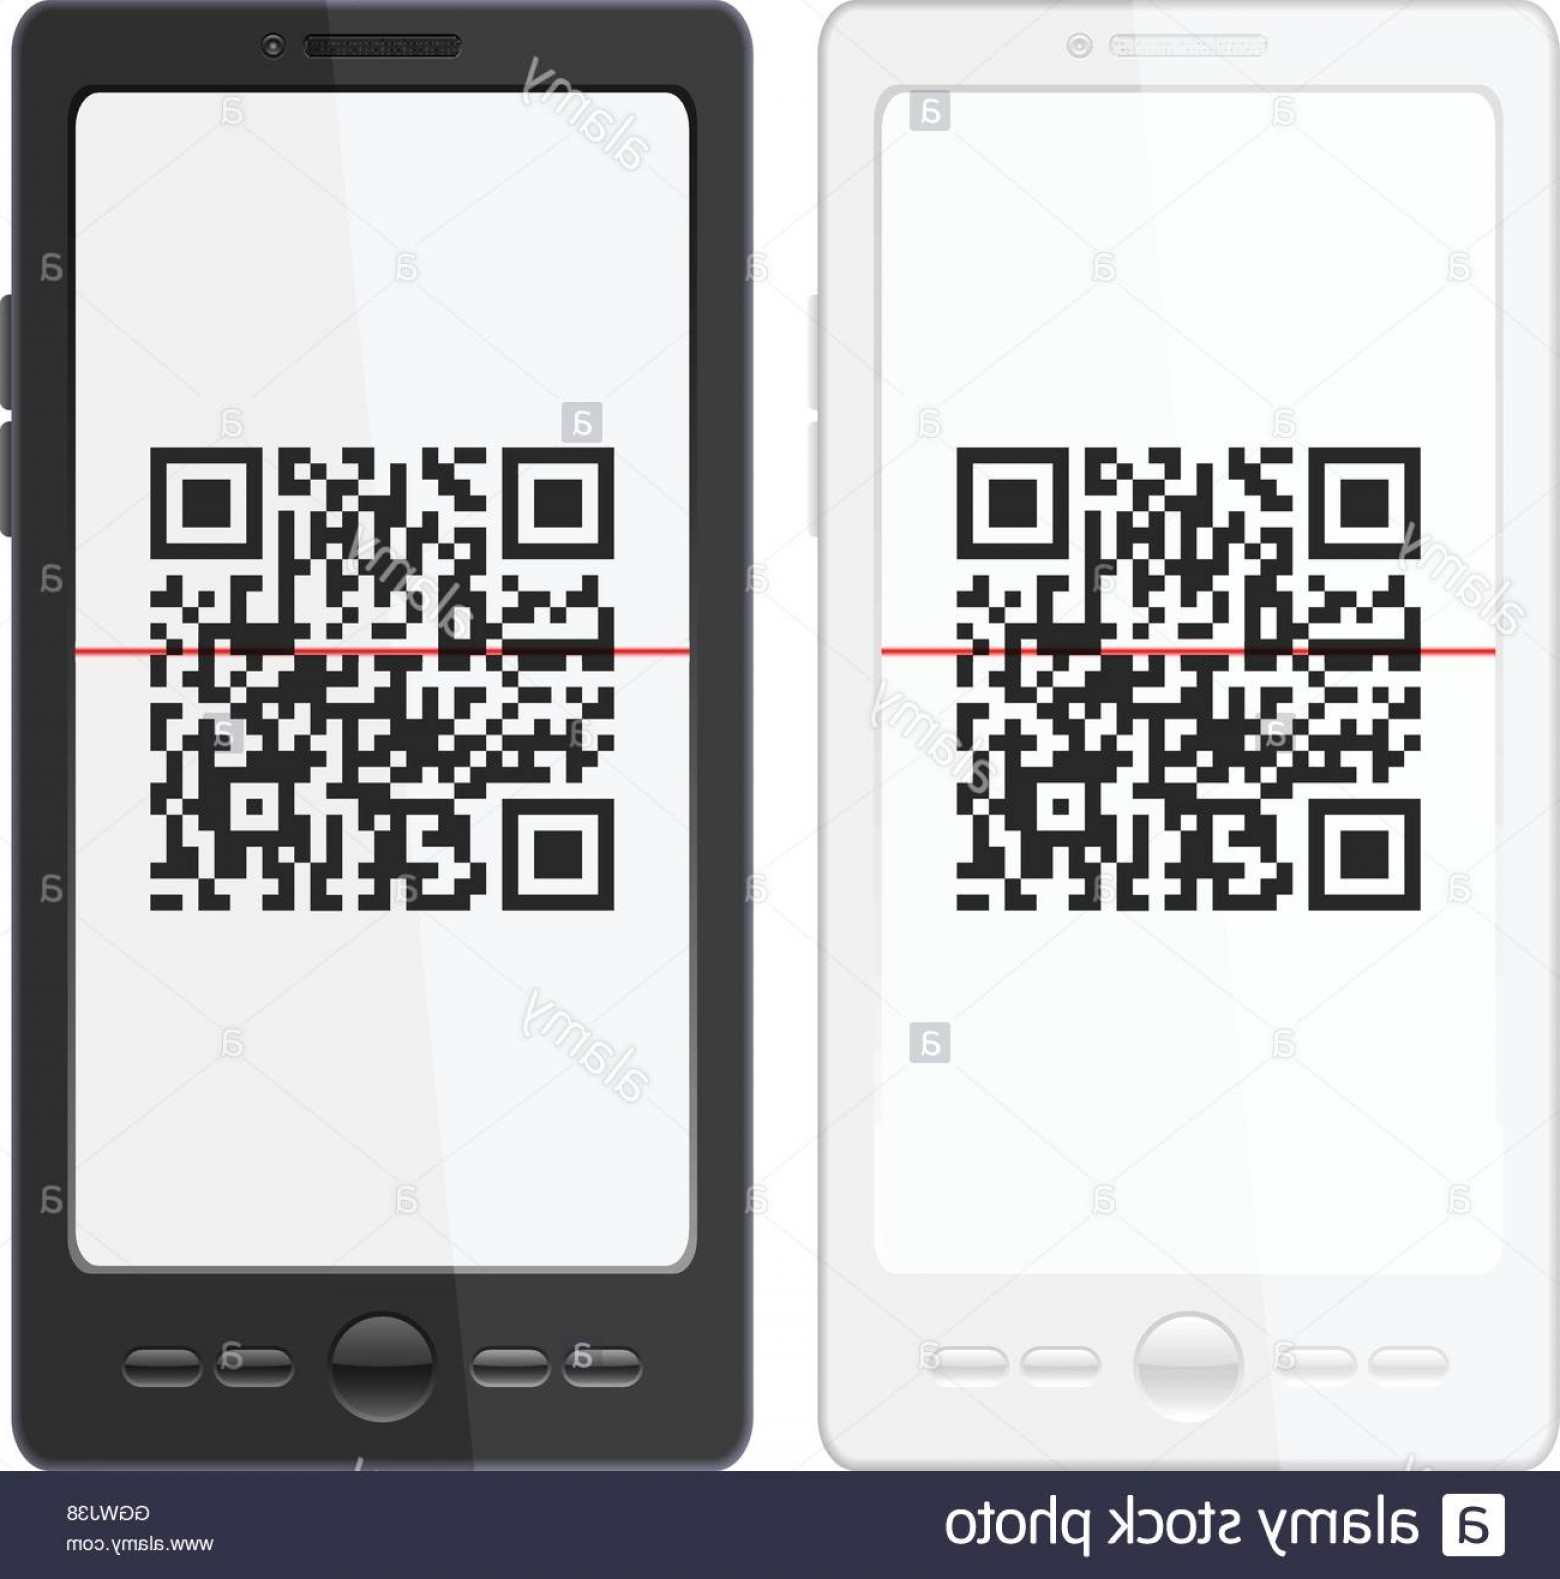 QR Mobile Phone Vector: Stock Photo Mobile Phone With Qr Code Scanner On A White Background